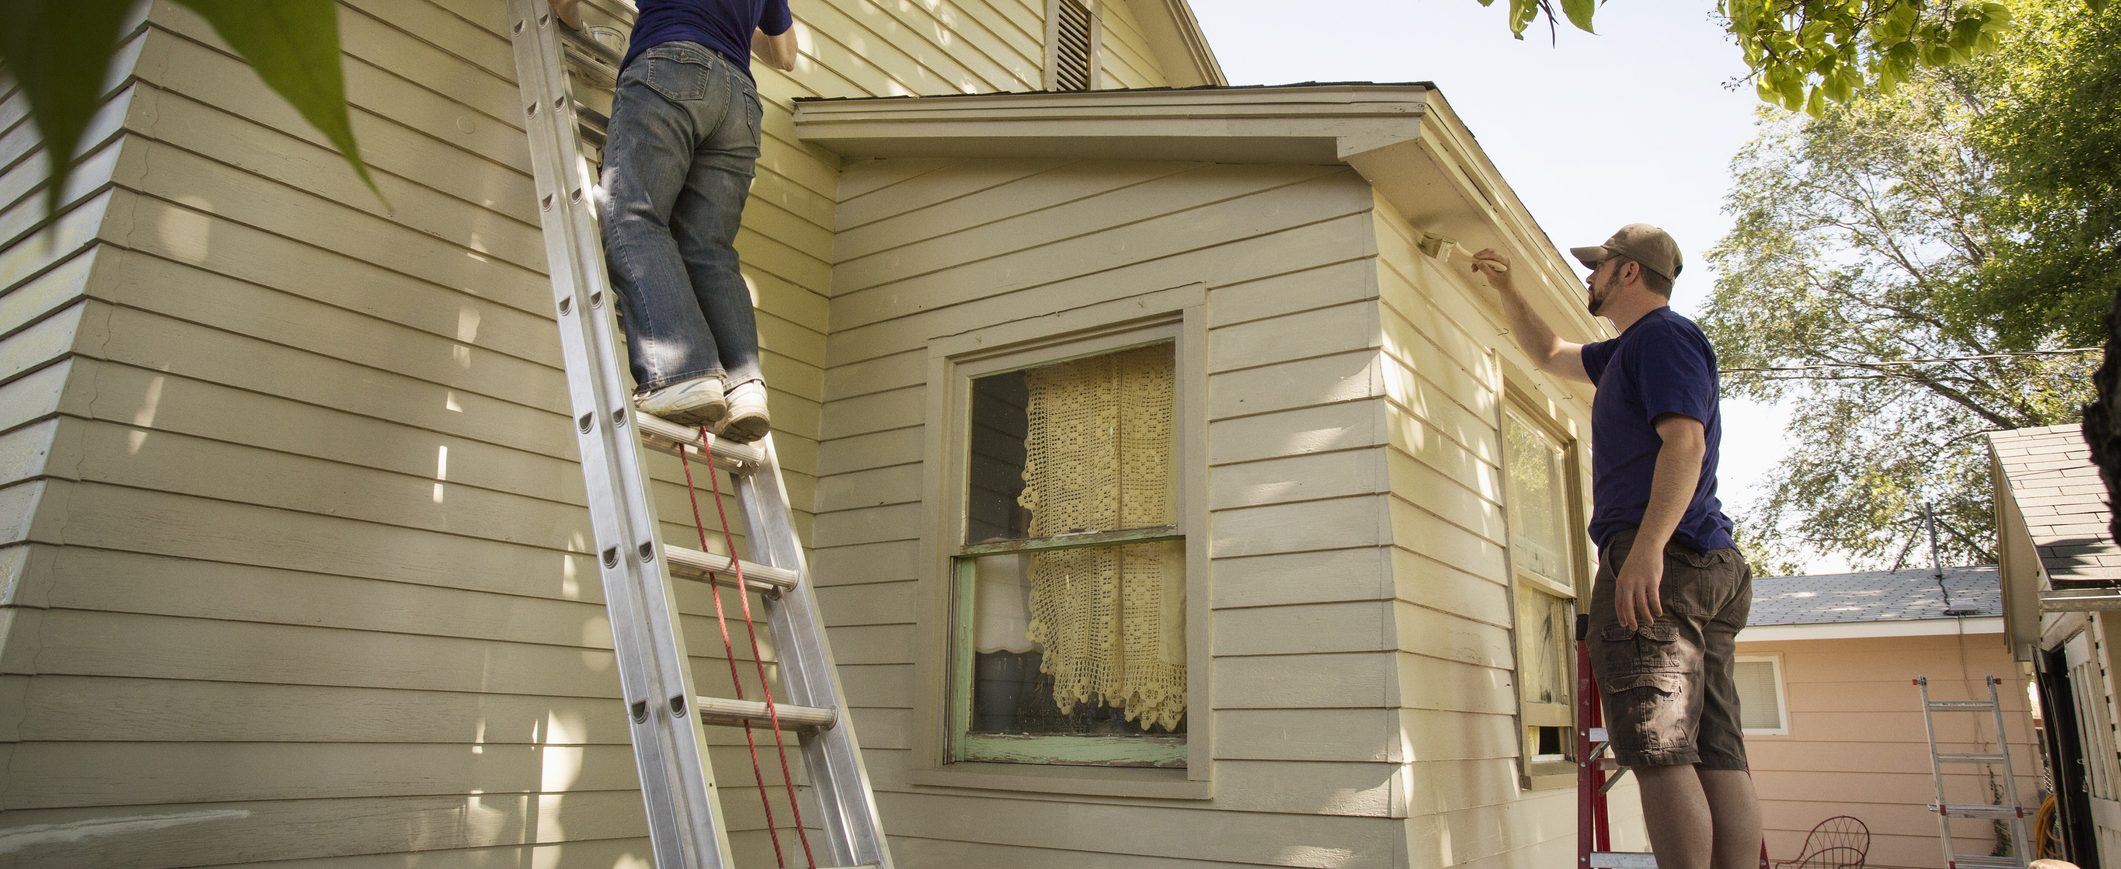 Costly home repairs are high on the list of reasons you need an emergency fund